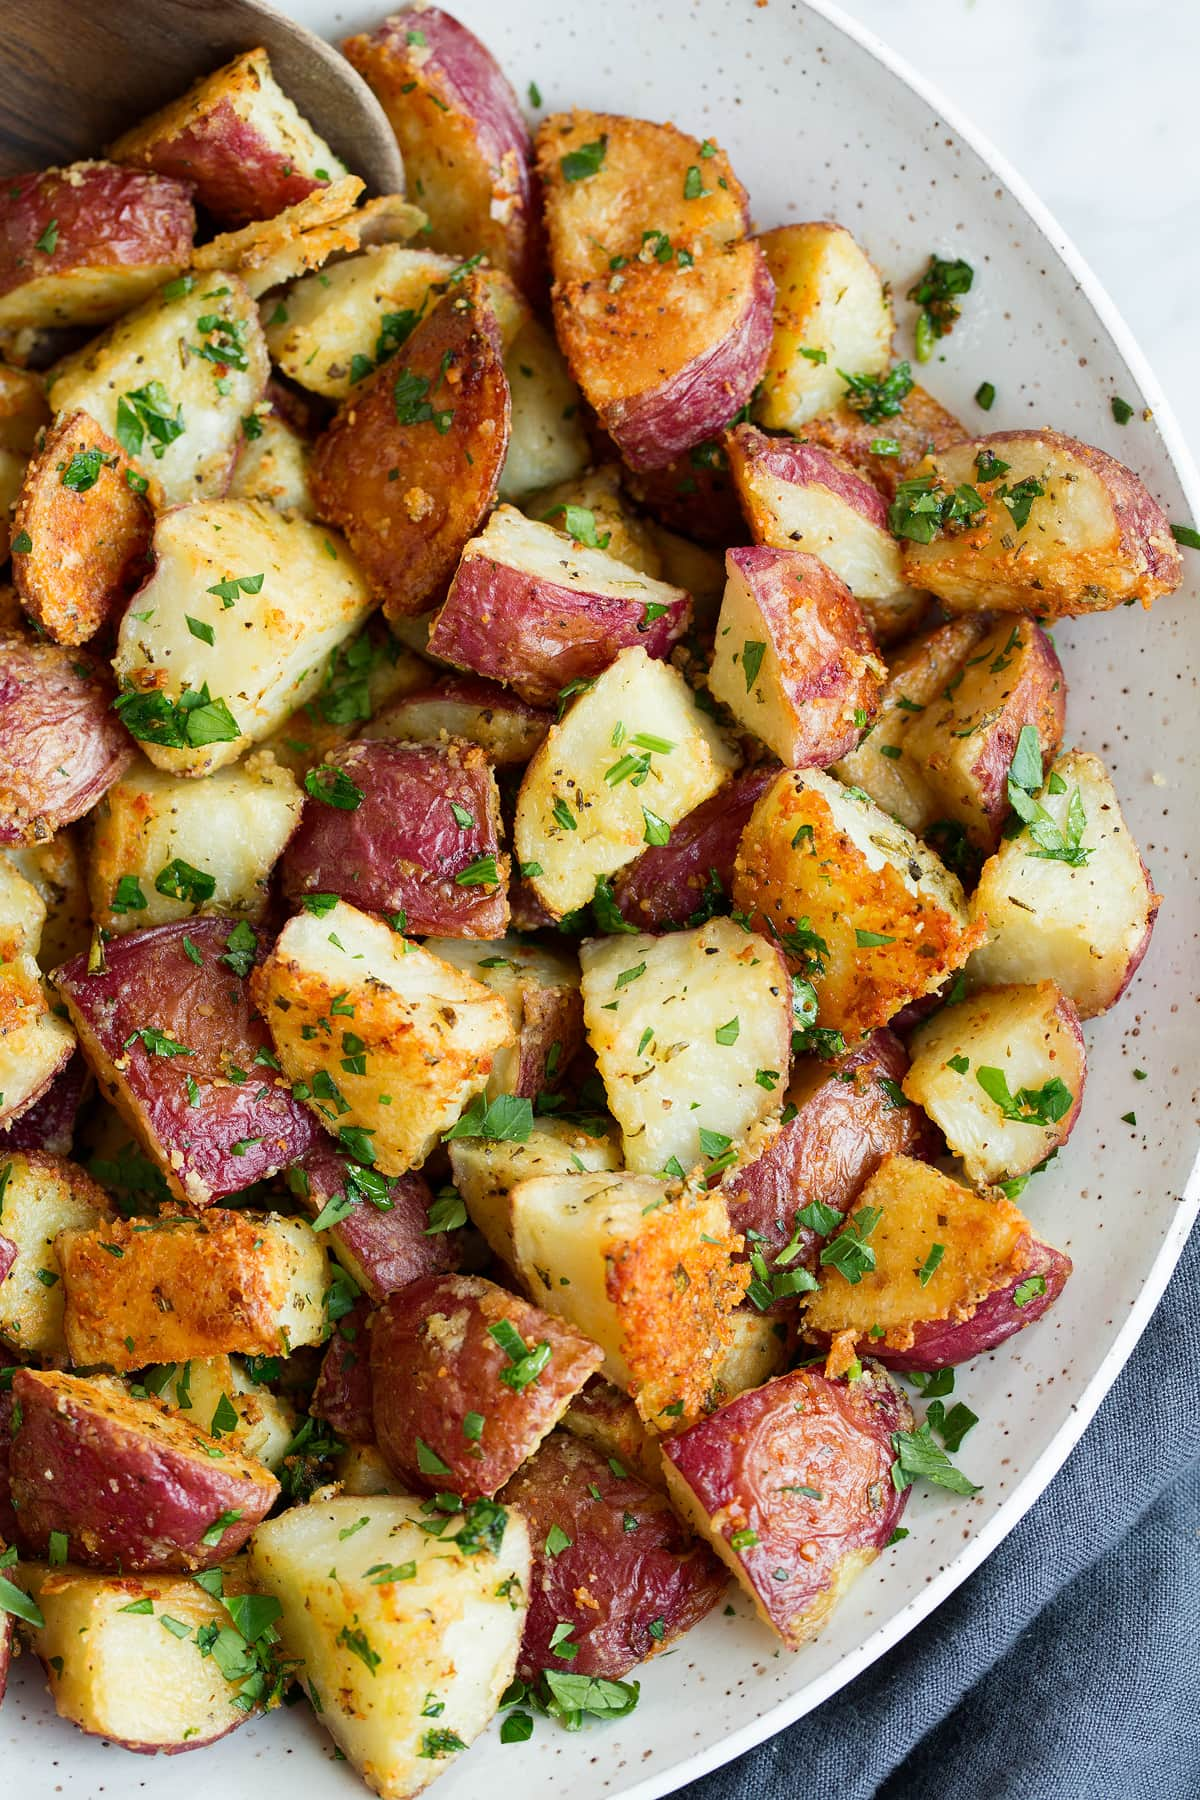 Oven Roasted Potatoes With Parmesan Garlic Herbs Cooking Classy